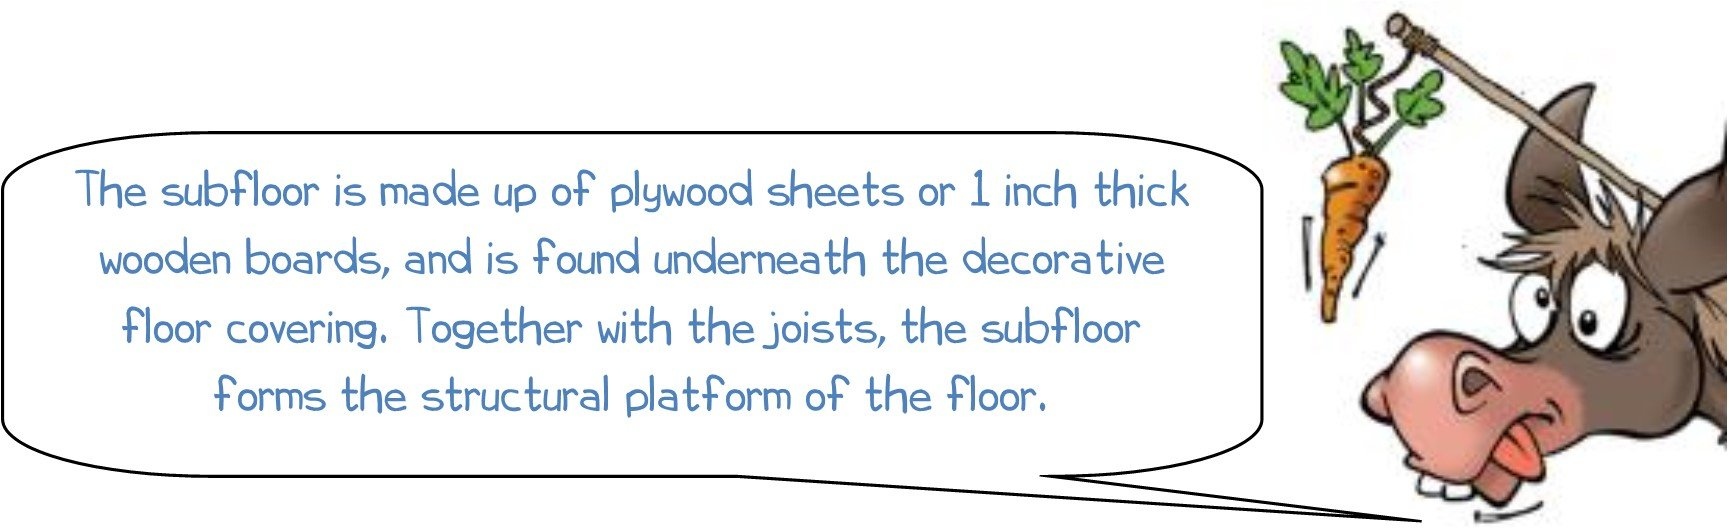 """WONKEE DONKEE says: """"The subfloor is made up of plywood sheets or 1 inch thick wooden boards, and is found underneath the decorative floor covering. Together with the joists, the subfloor forms the structural platform of the floor."""""""